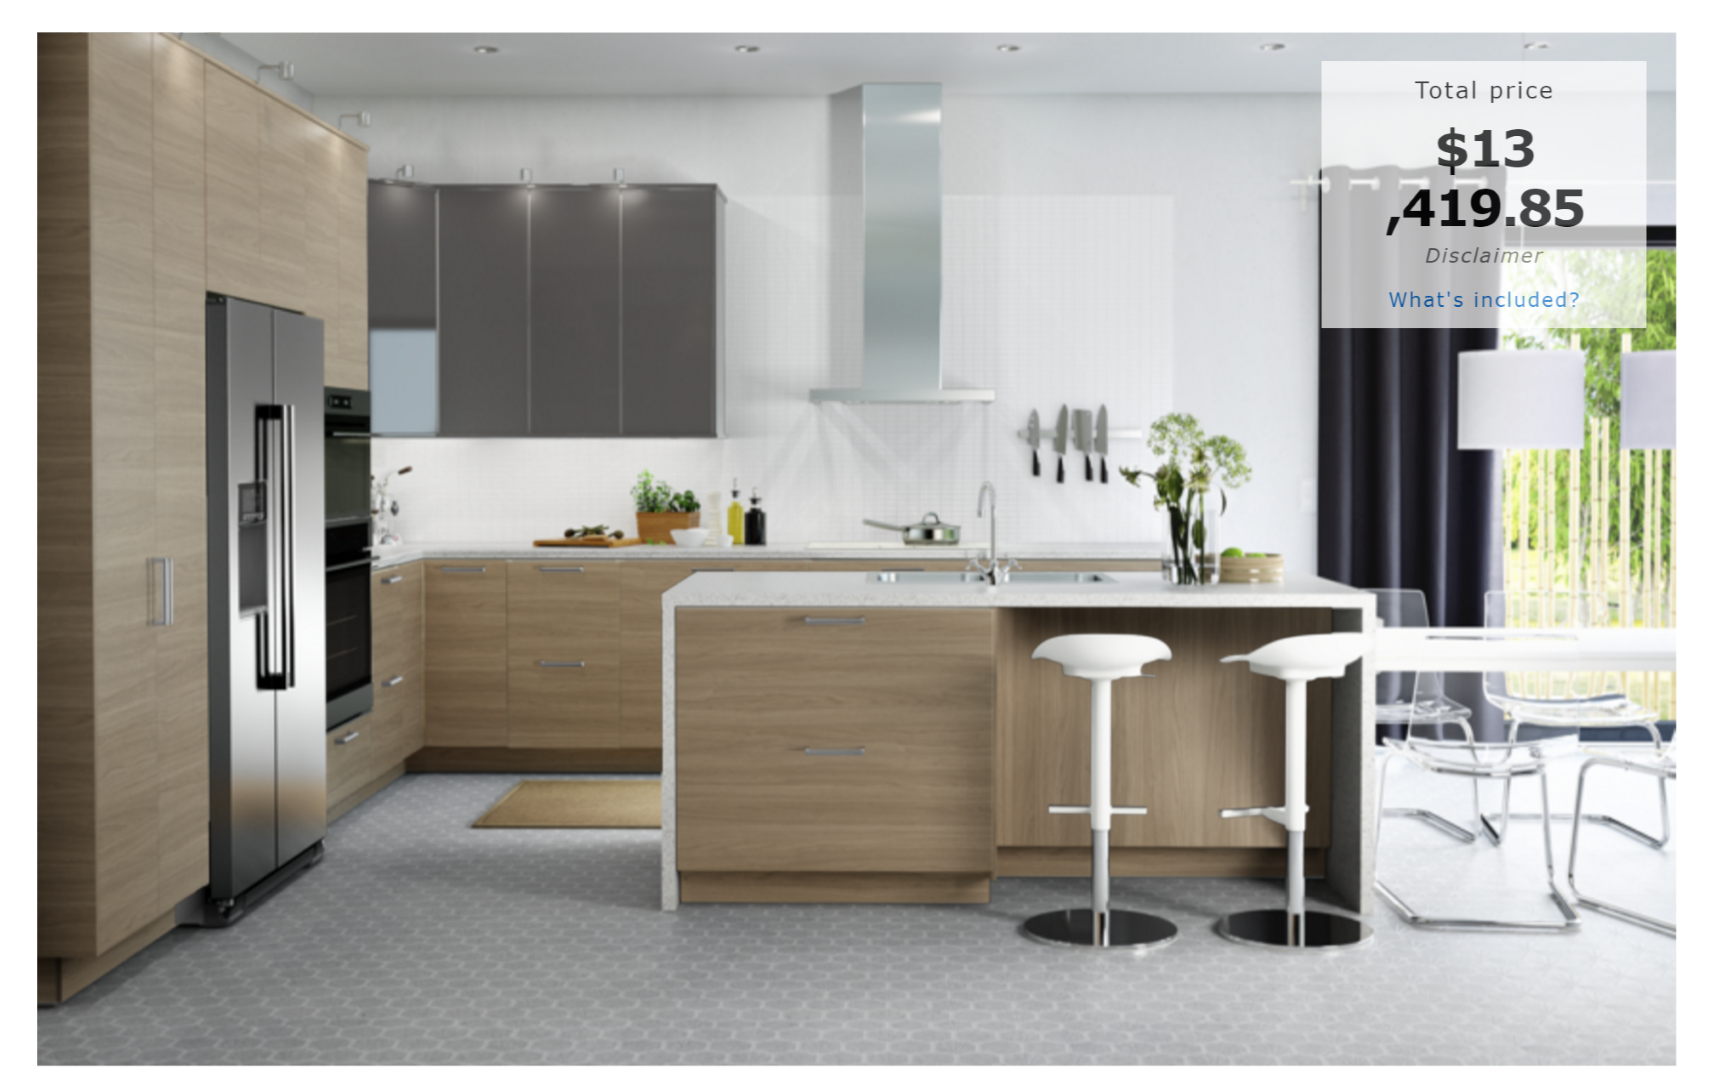 Kitchenette Ideas How Much Will An Ikea Kitchen Cost